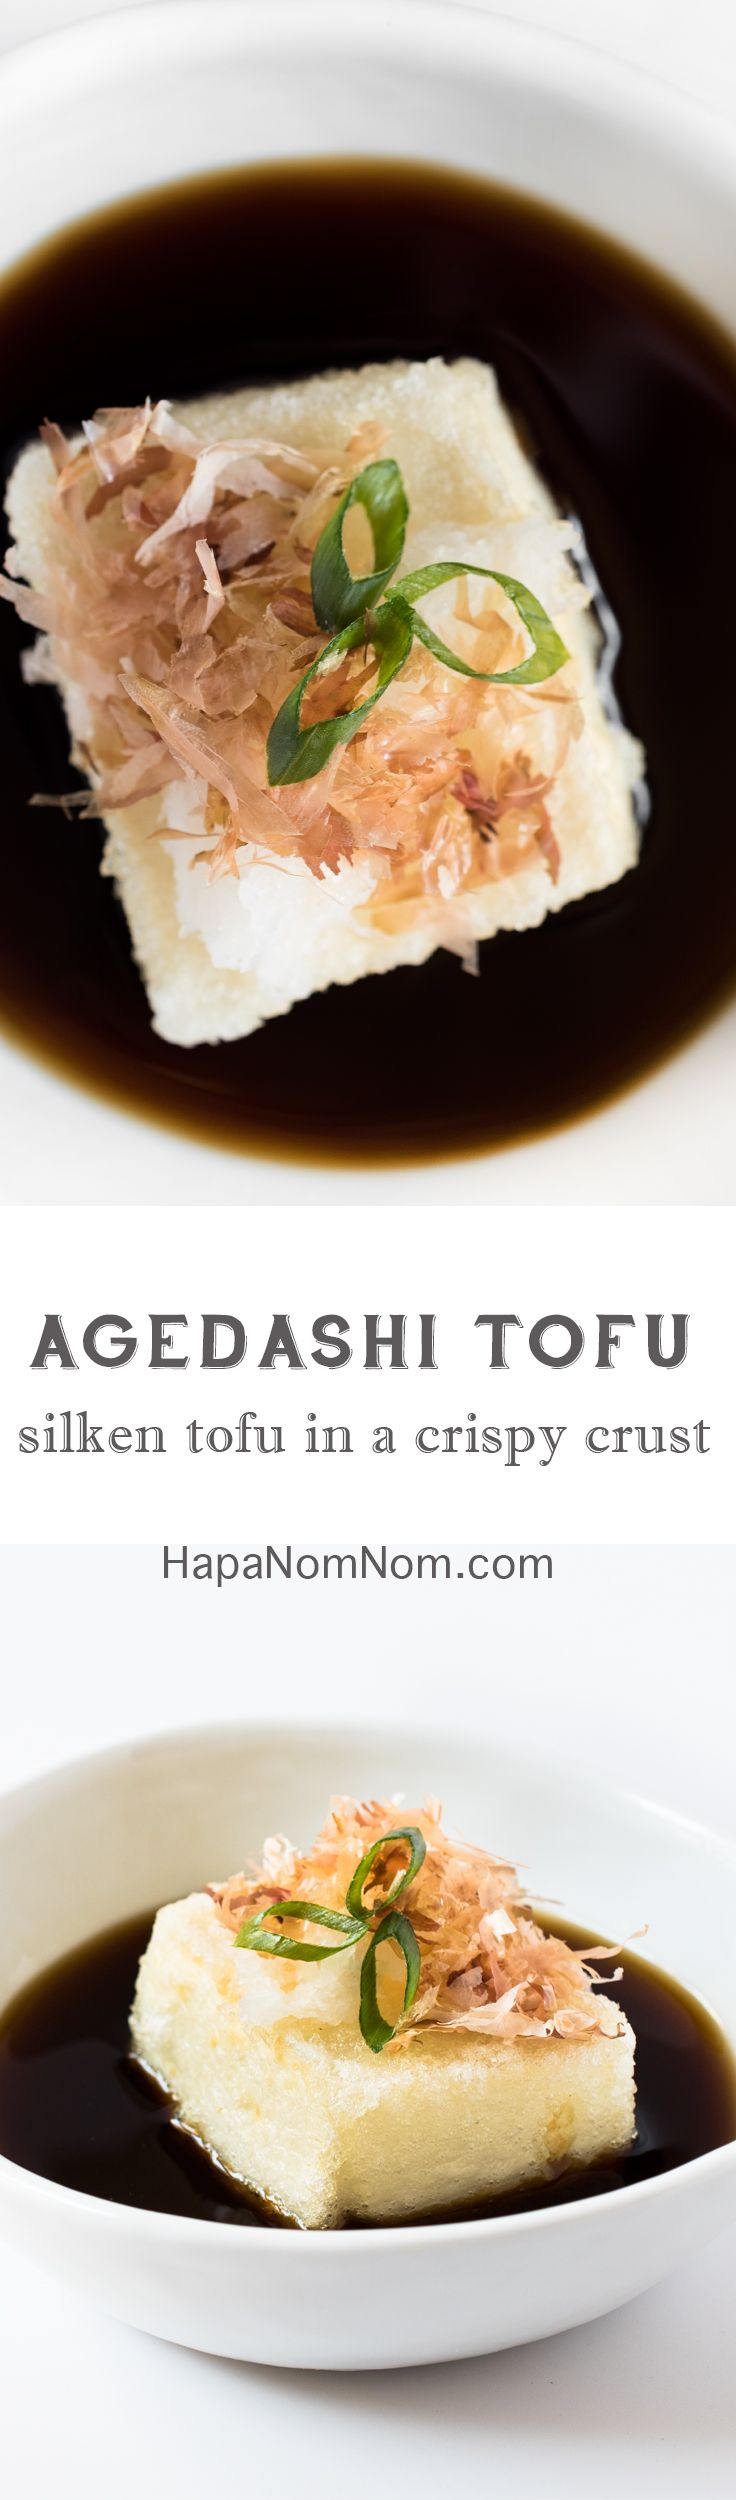 silky tofu encased in a thin, crispy crust and sits in a shallow dashi-based broth. Topped with a little daikon radish, katsuobushi, and sliced scallions -this dish is delicate in flavor and elegant in presentation.